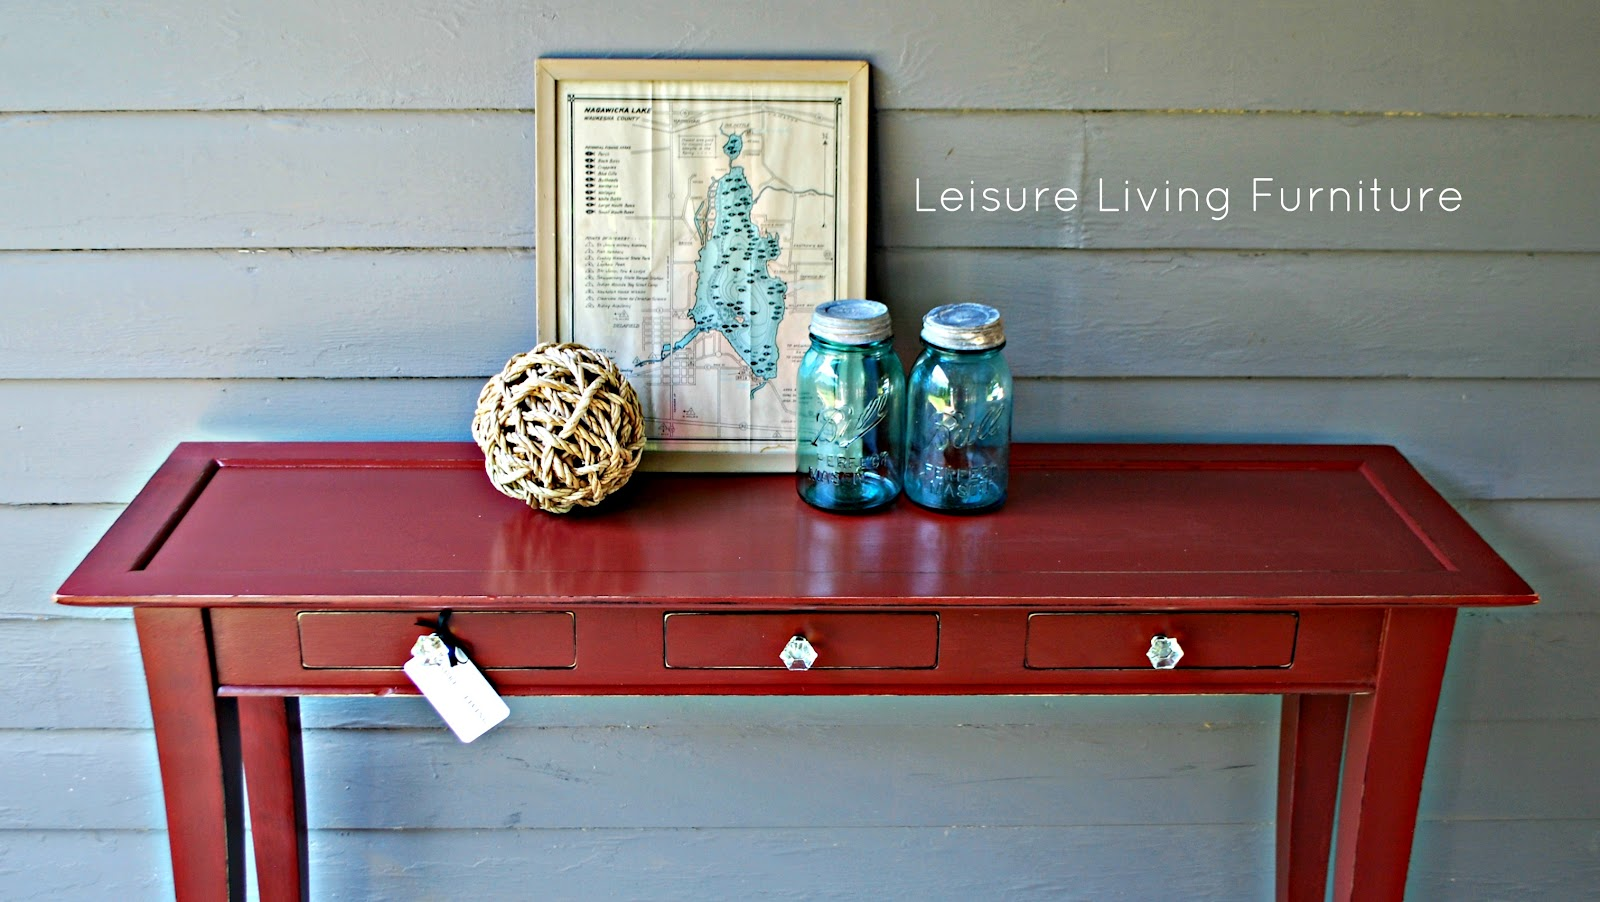 Tremendous Leisure Living Primer Red Sofa Table Home Interior And Landscaping Dextoversignezvosmurscom